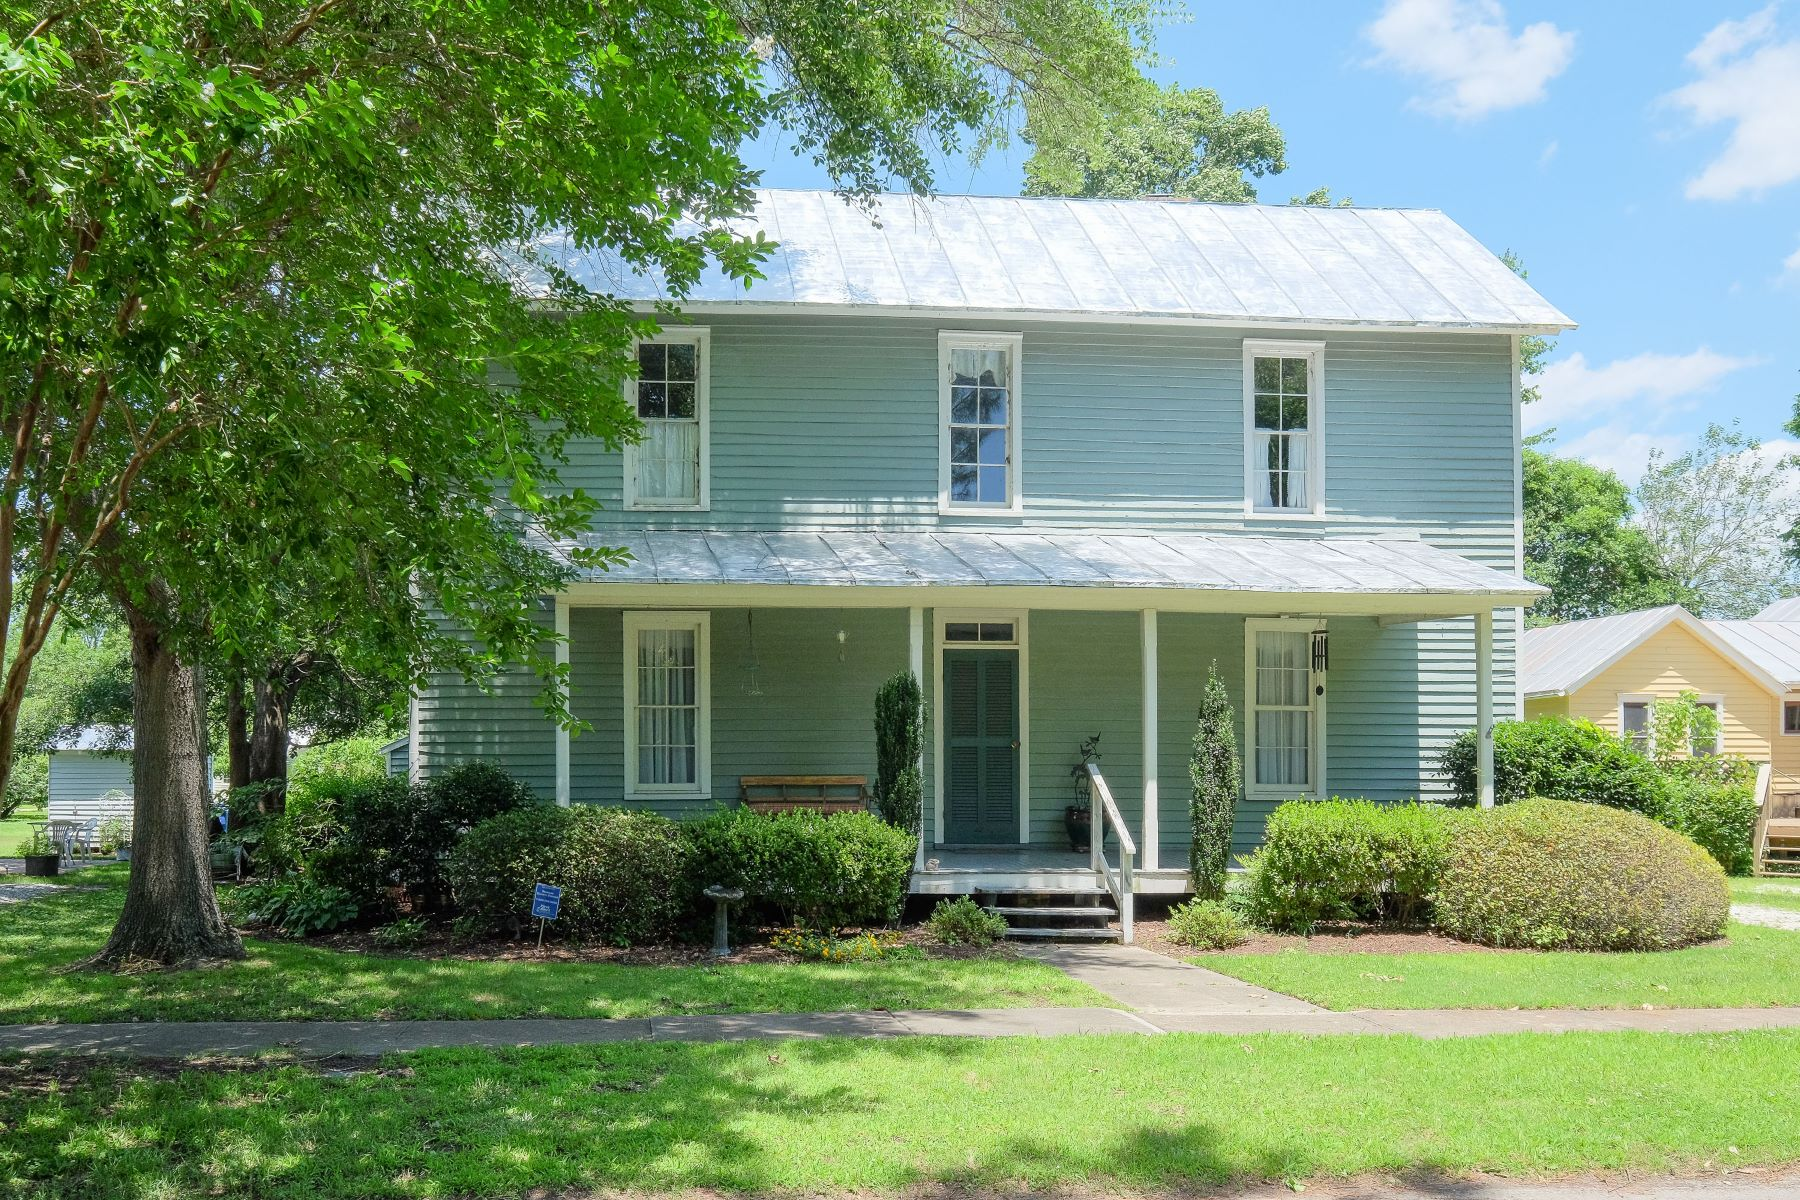 Single Family Home for Sale at Larger Mill Village Home 413 Elliott St Edenton, North Carolina 27932 United States